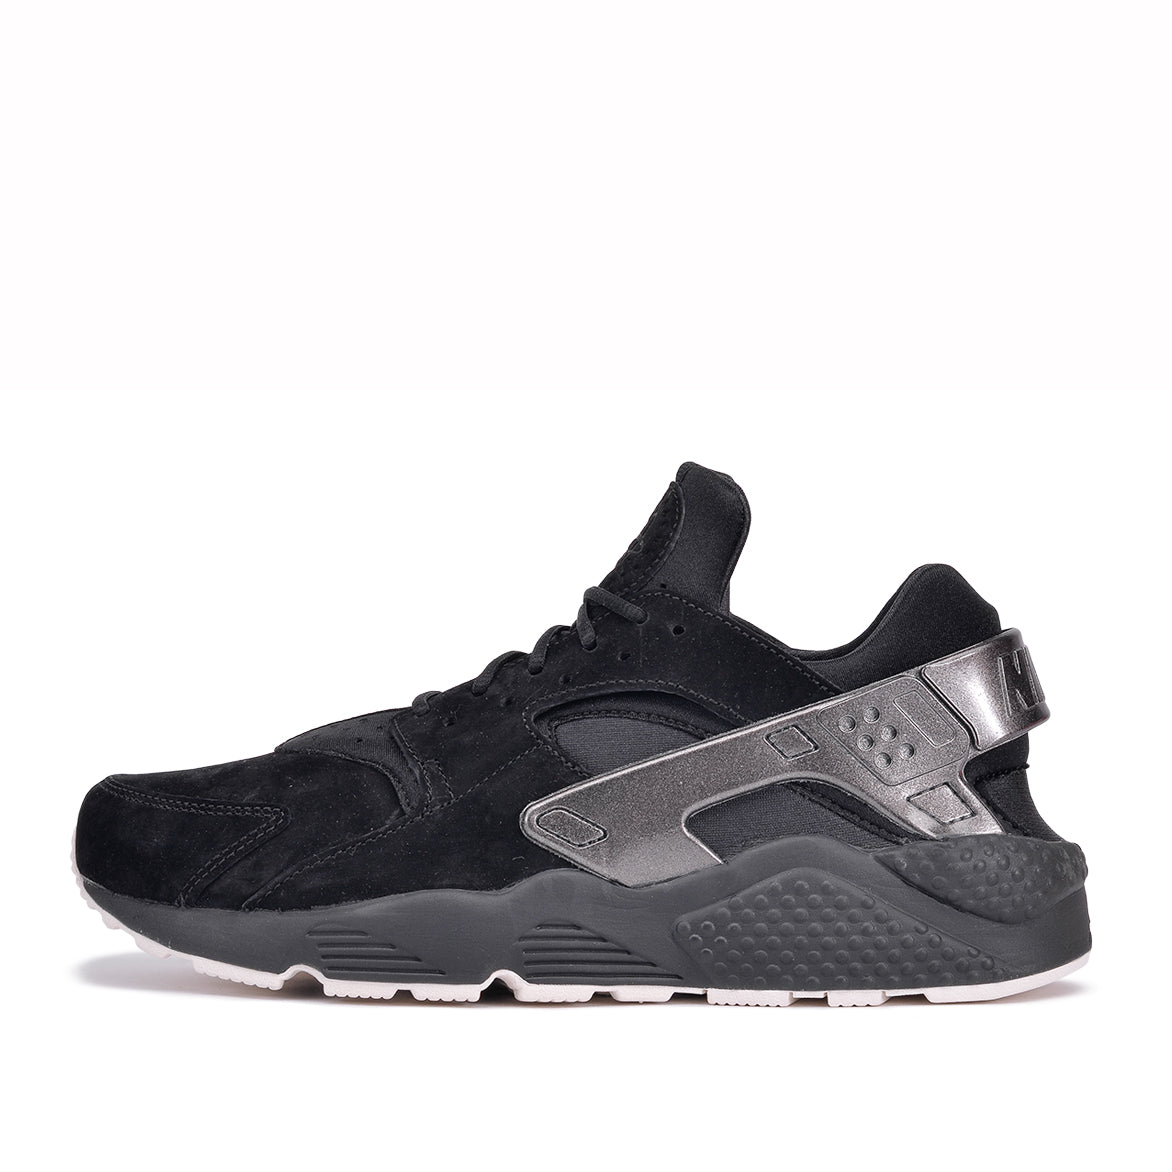 timeless design 97f7a a6893 AIR HUARACHE RUN PRM - BLACK / METALLIC BLACK